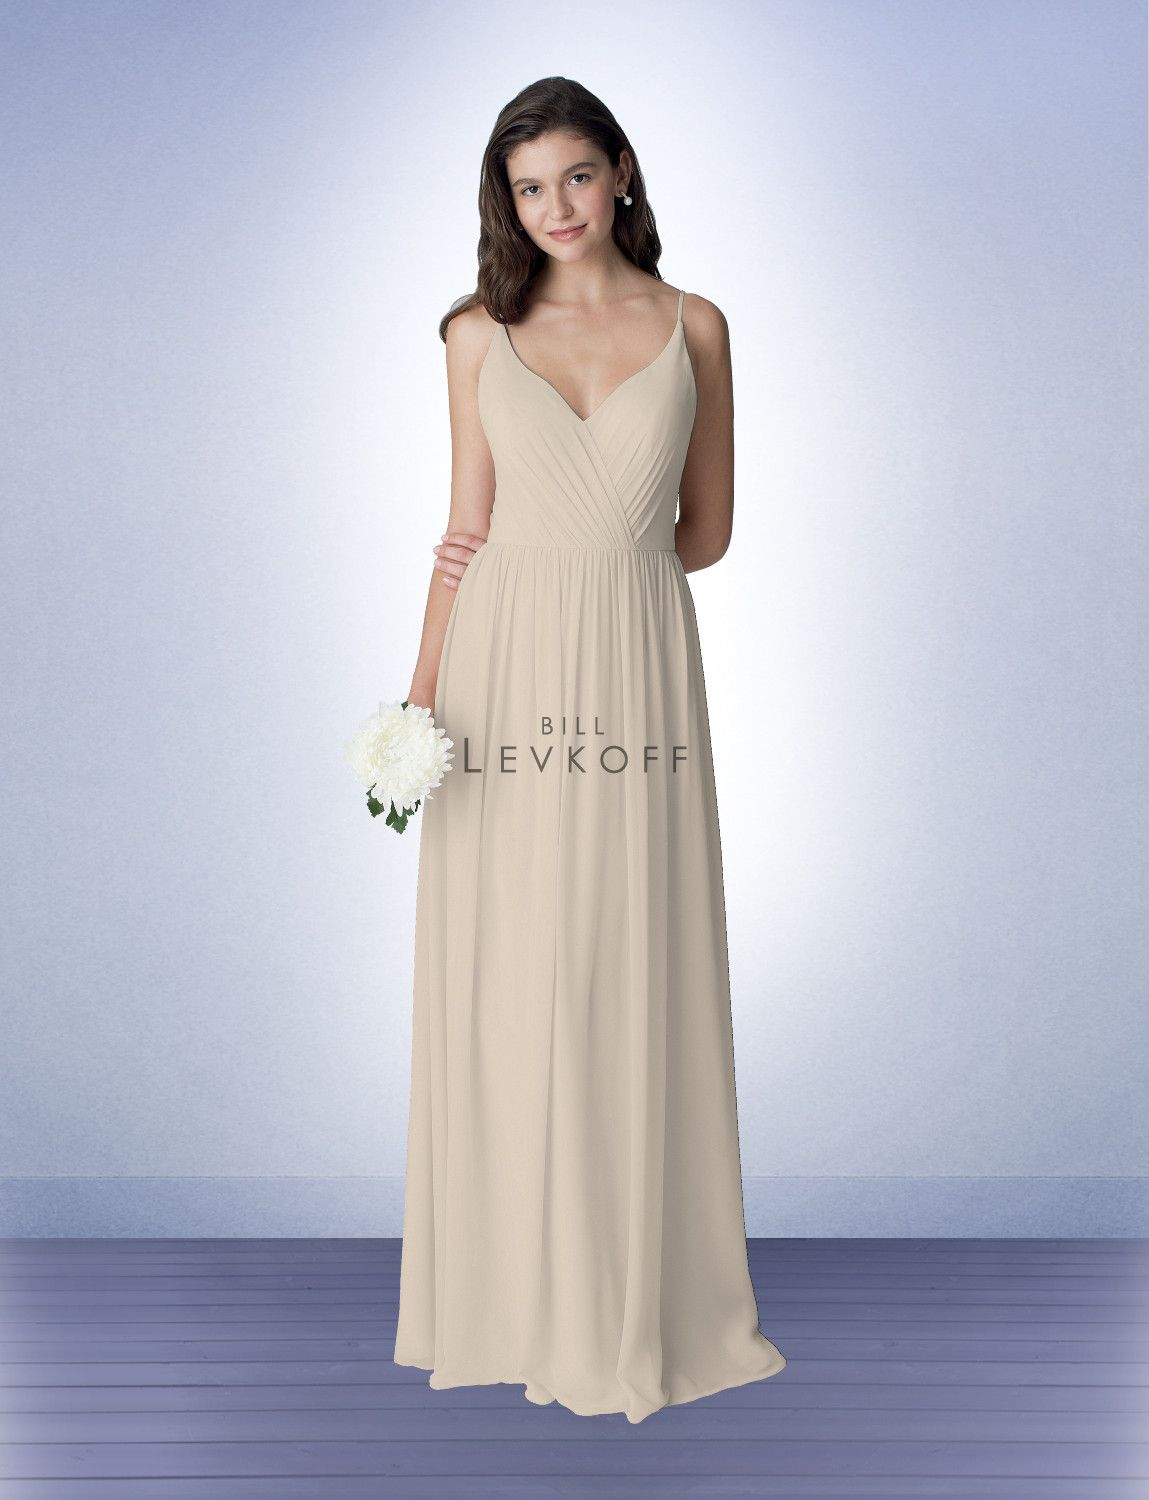 d86d10e3cb5 Bridesmaid Dress Available at Ella Park Bridal. Cashmere Color...Bill  Levkoff